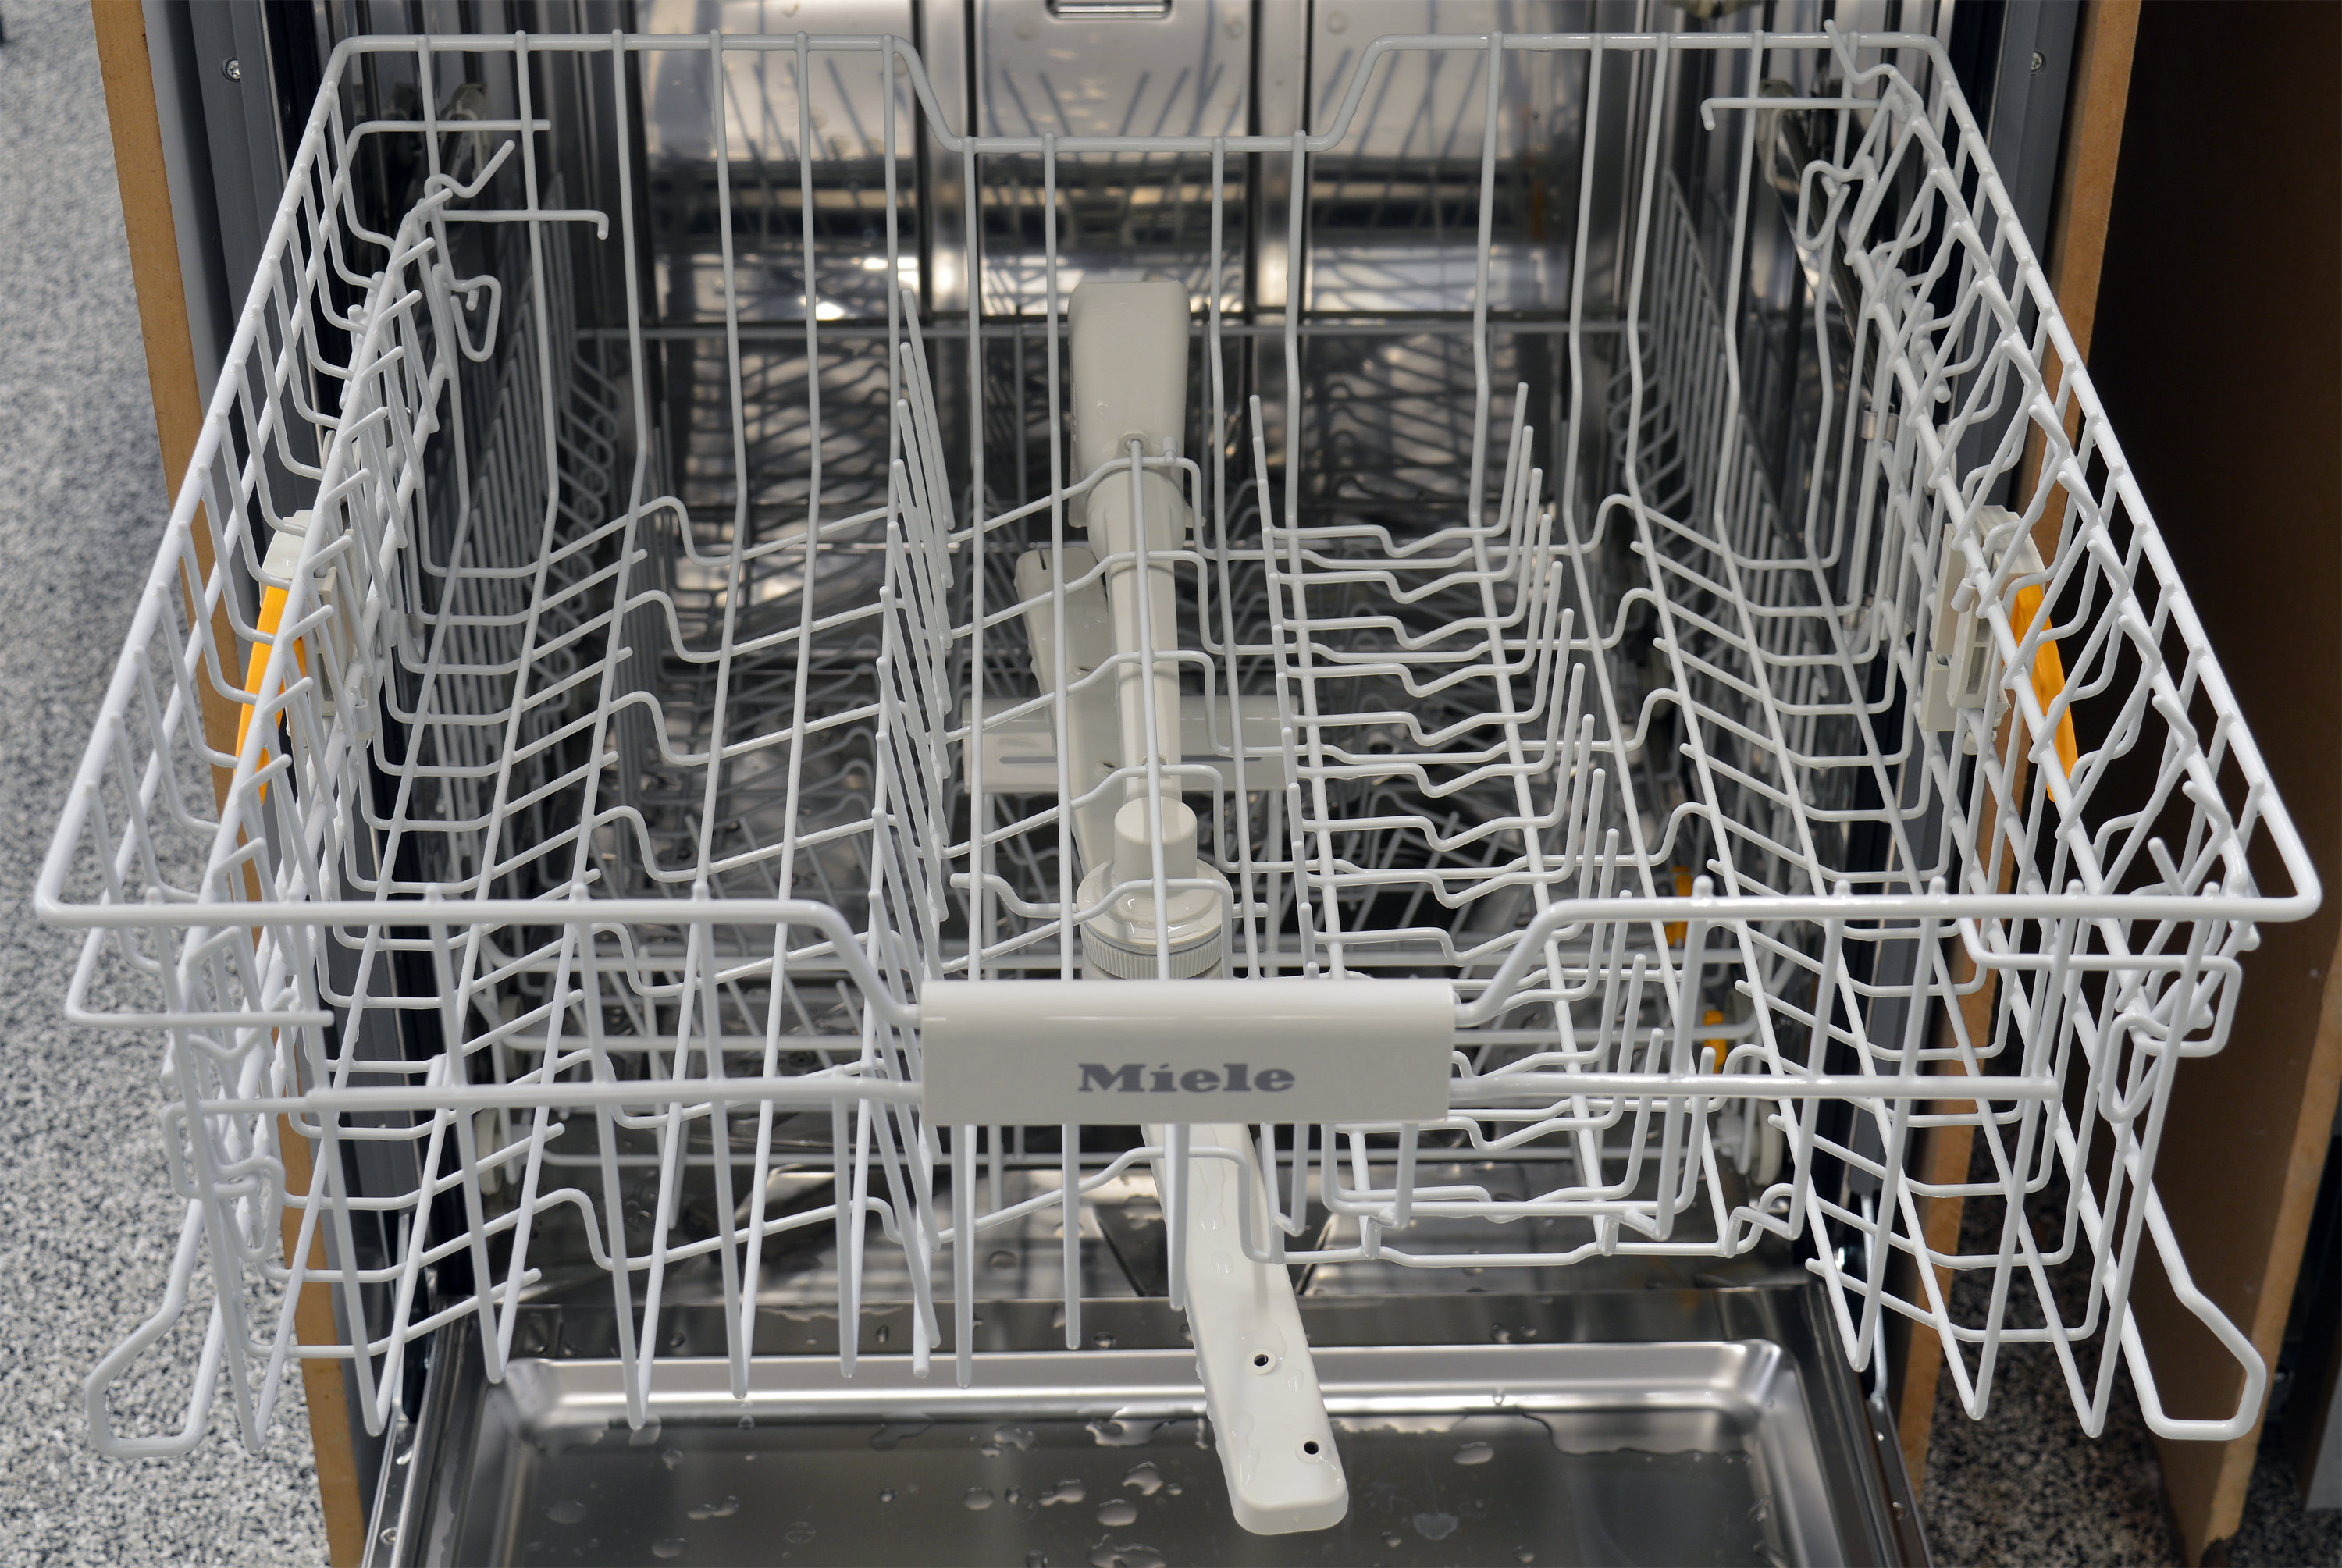 Miele G4925SCU top rack